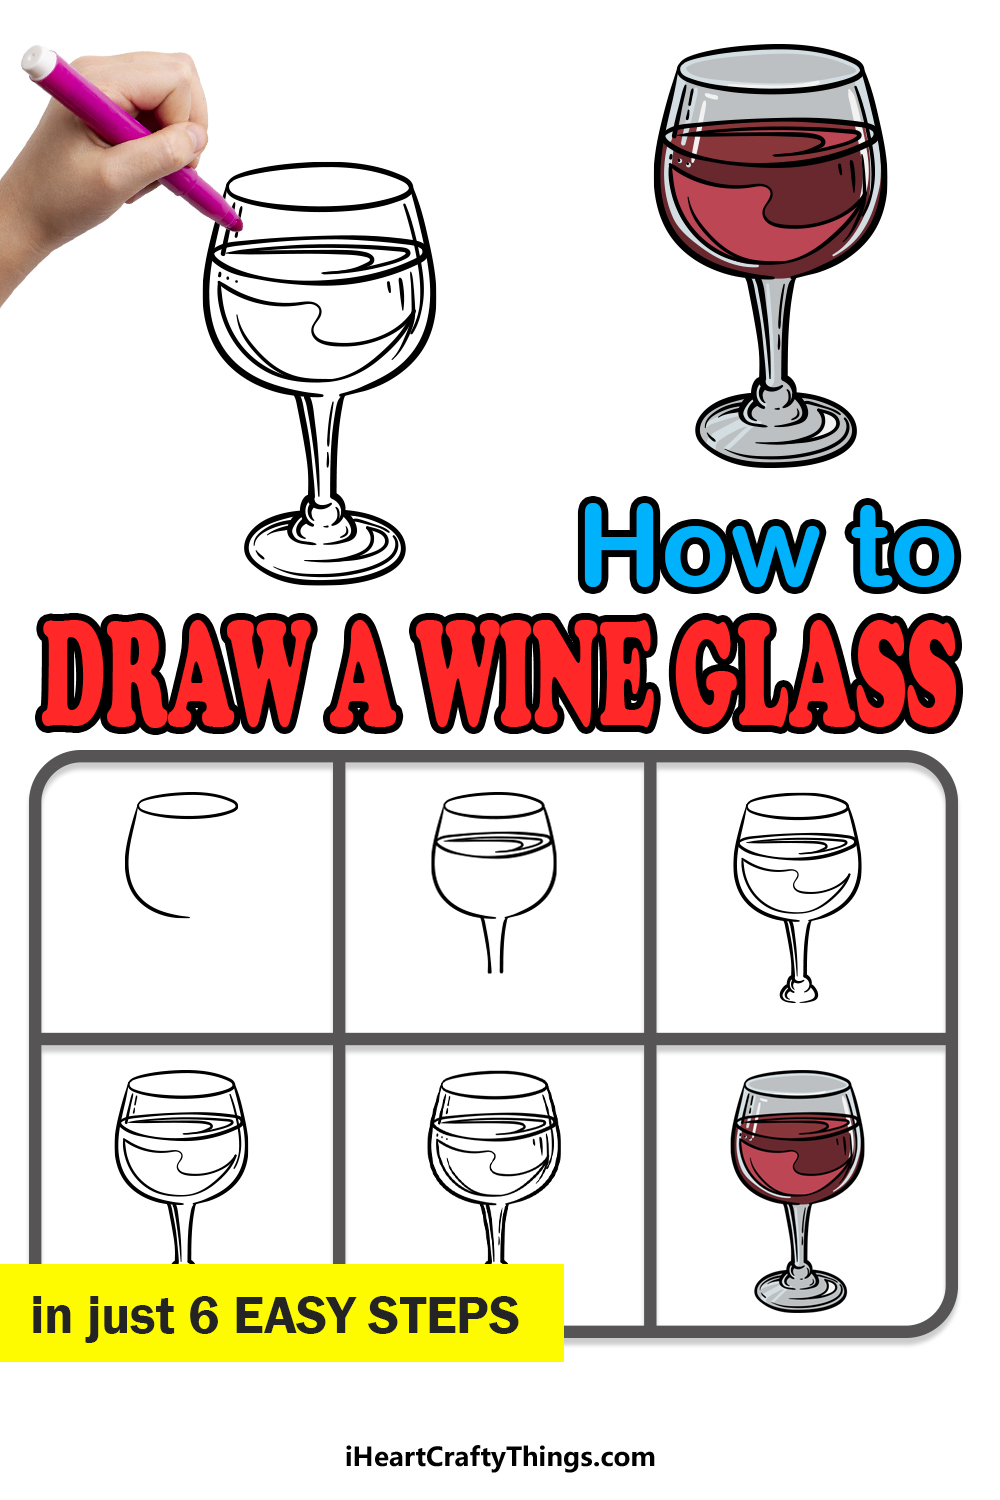 how to draw a wine glass in 6 easy steps